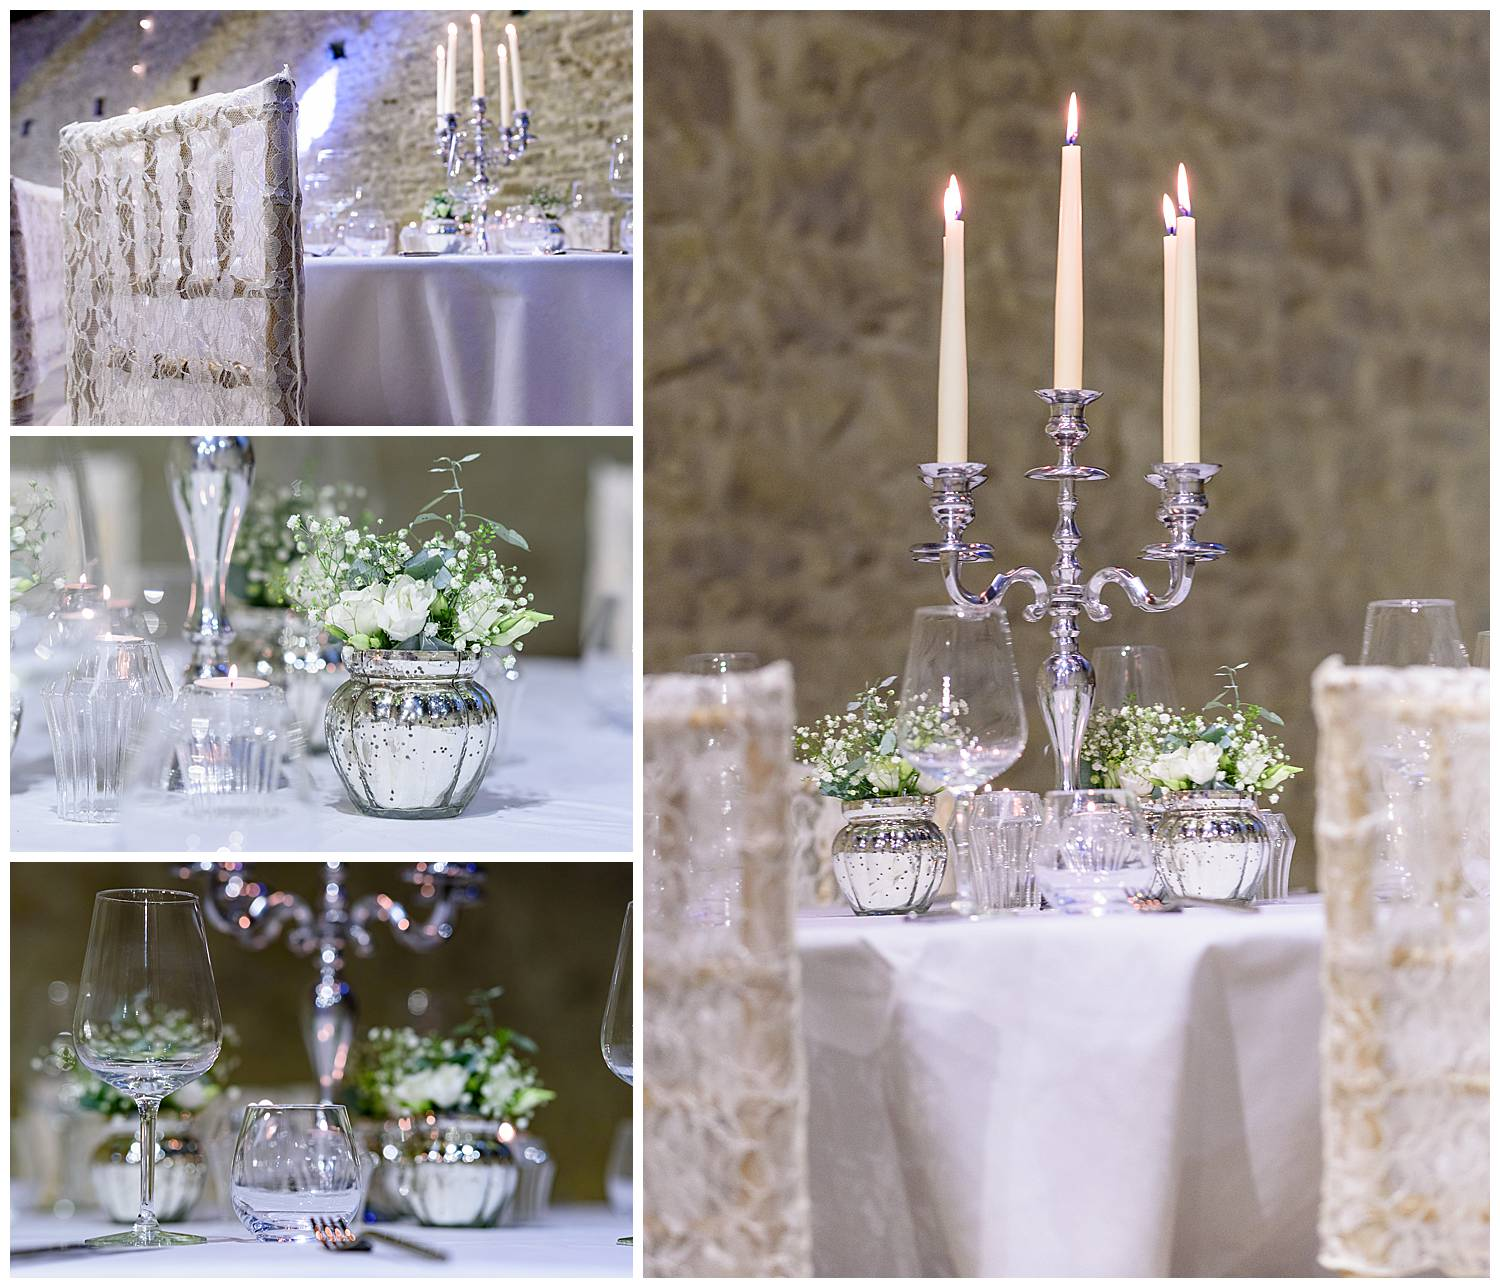 Product photography of silver and white table accessories for a wedding breakfast